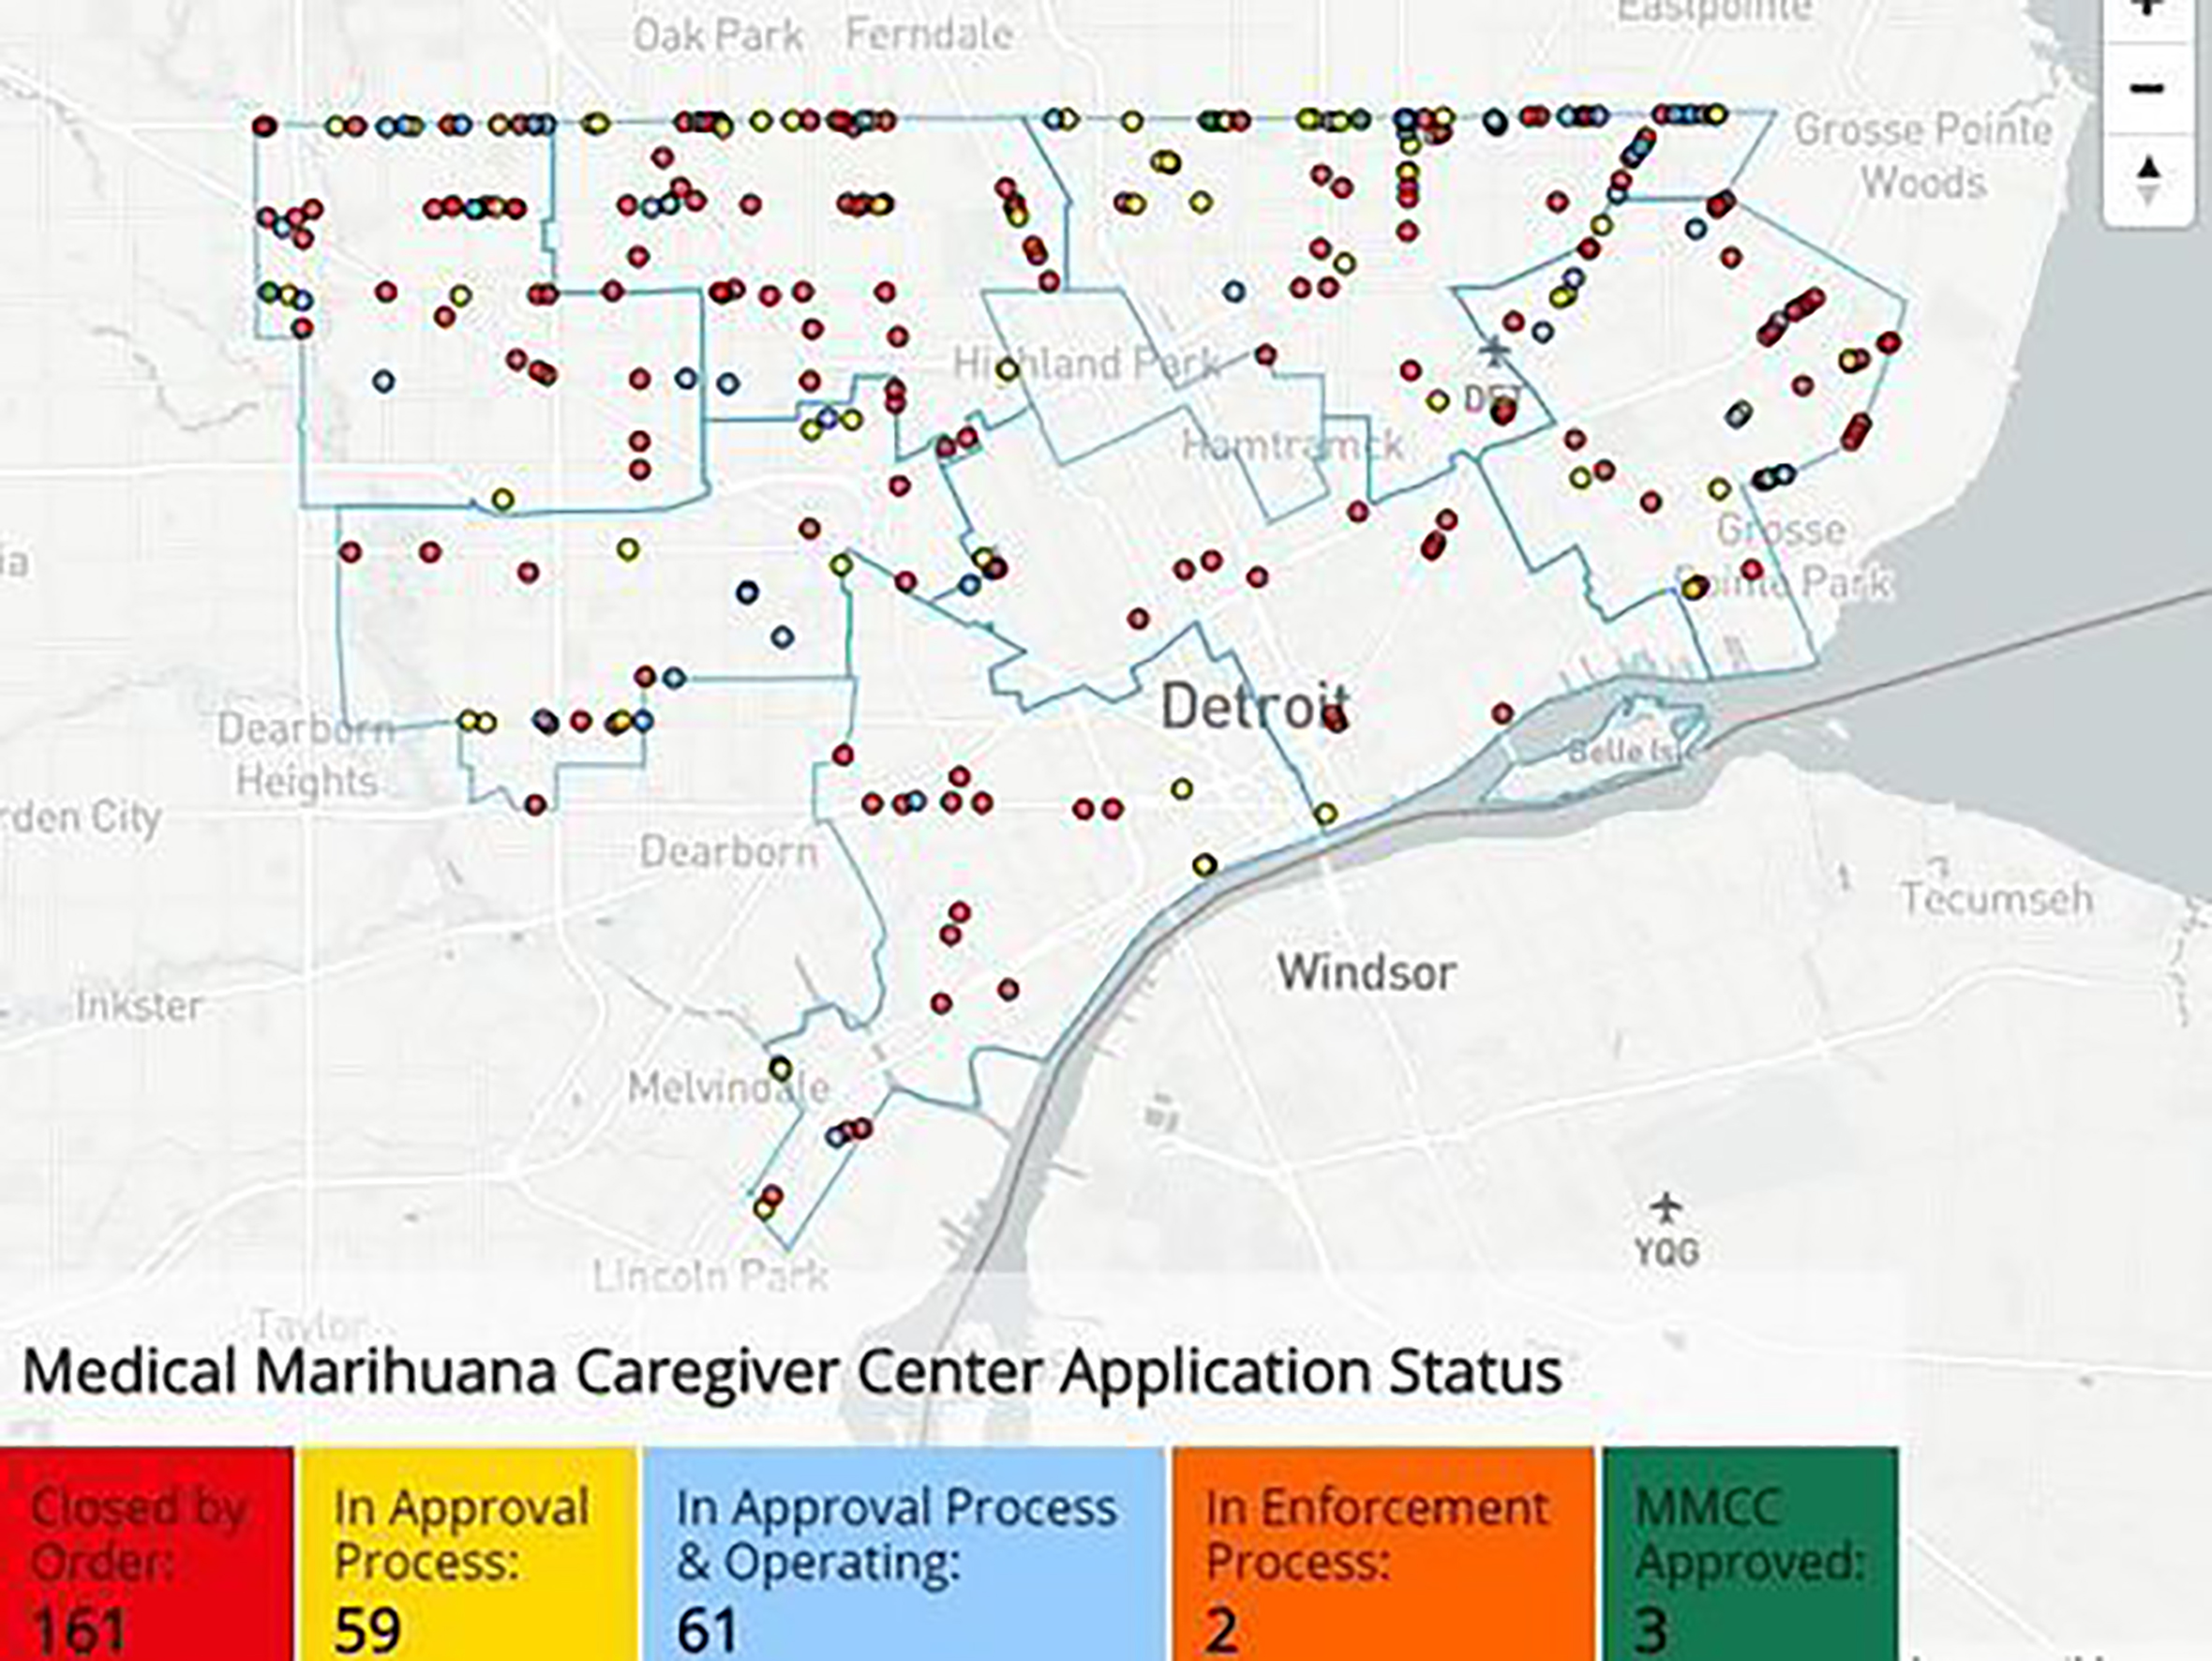 Map of the medical Marijuana Caregiver Center Application Status